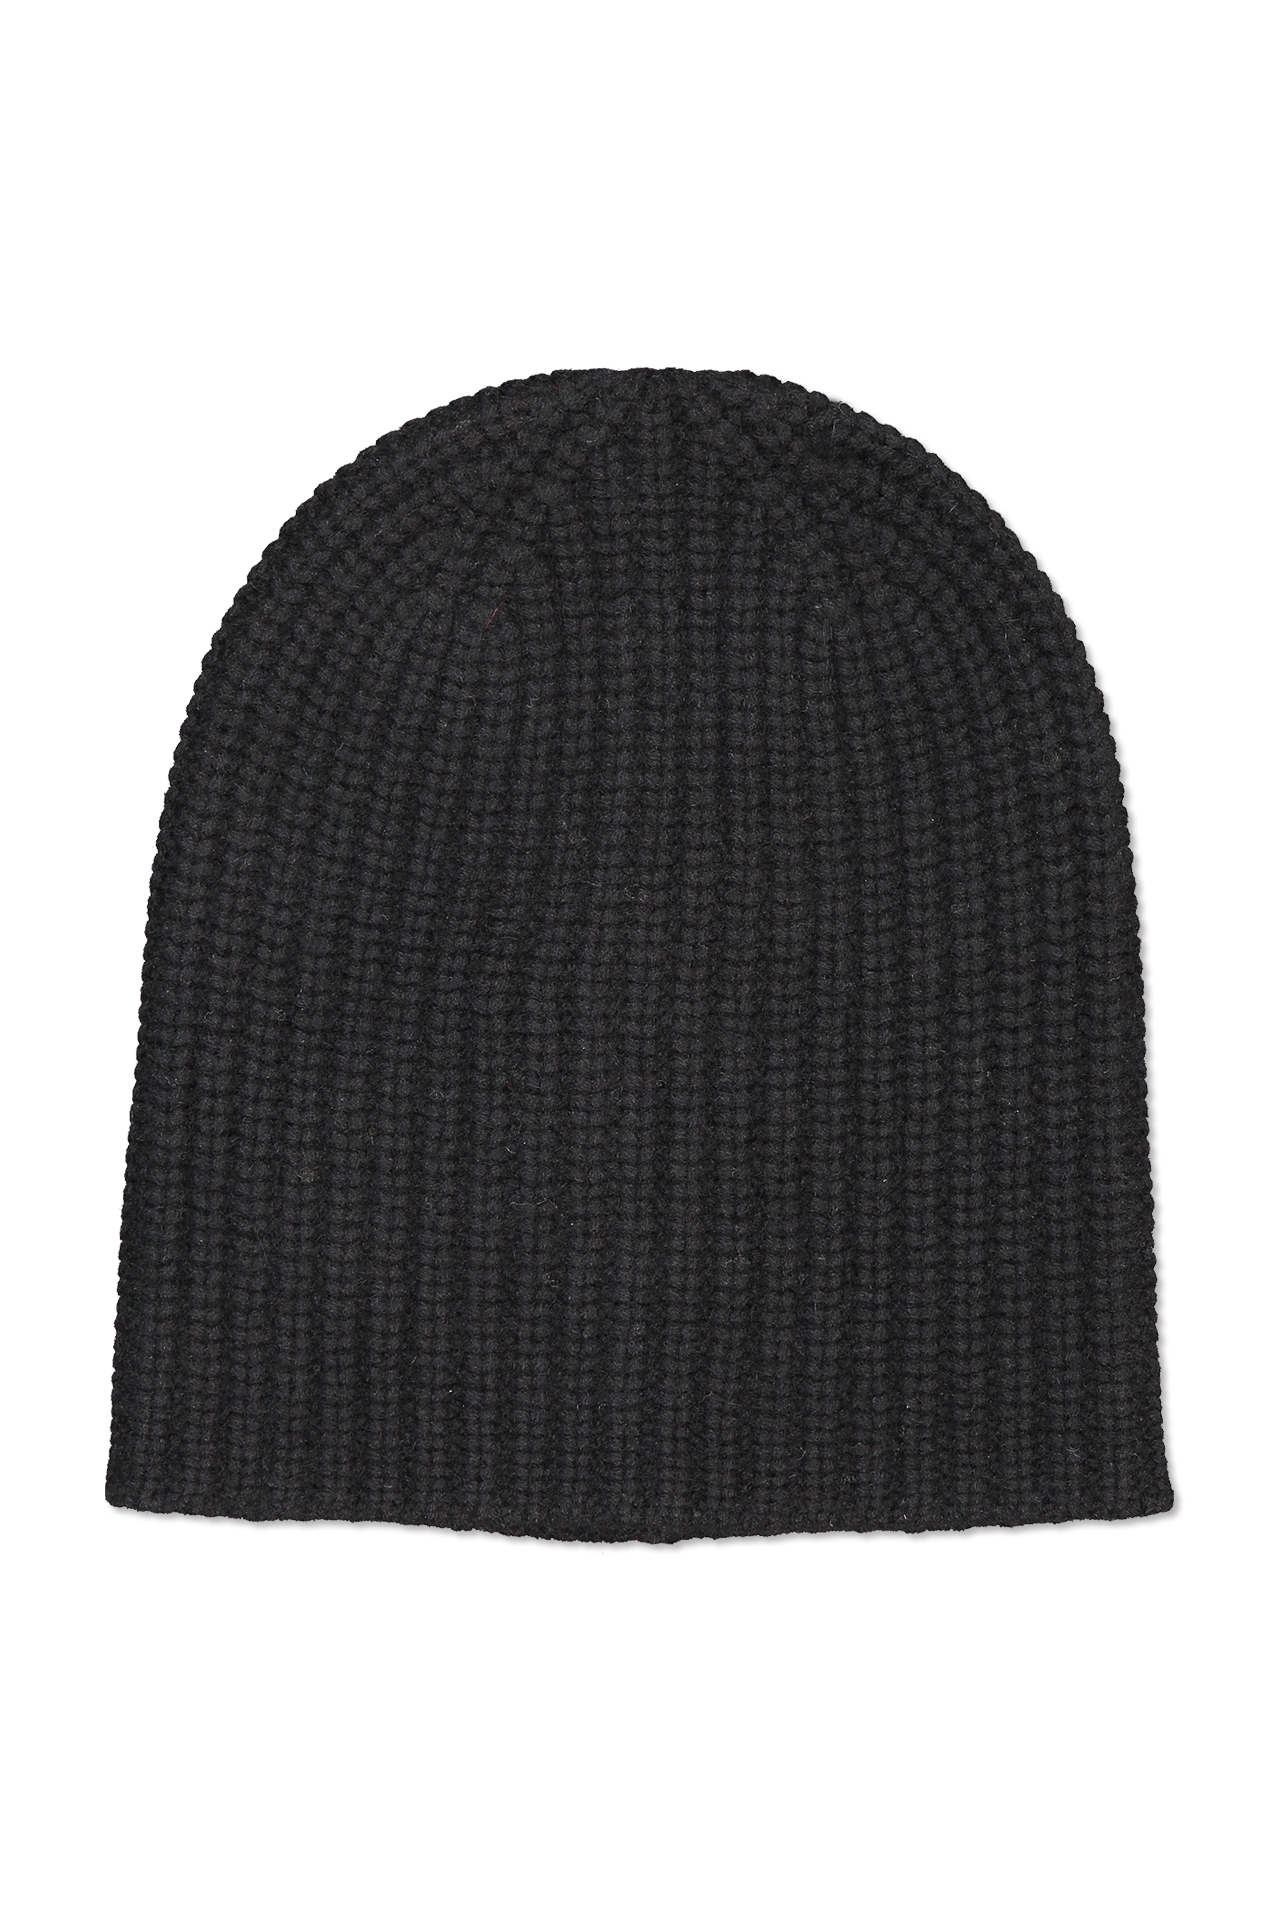 Image of Alex Mill Cashmere Solid Beanie Black